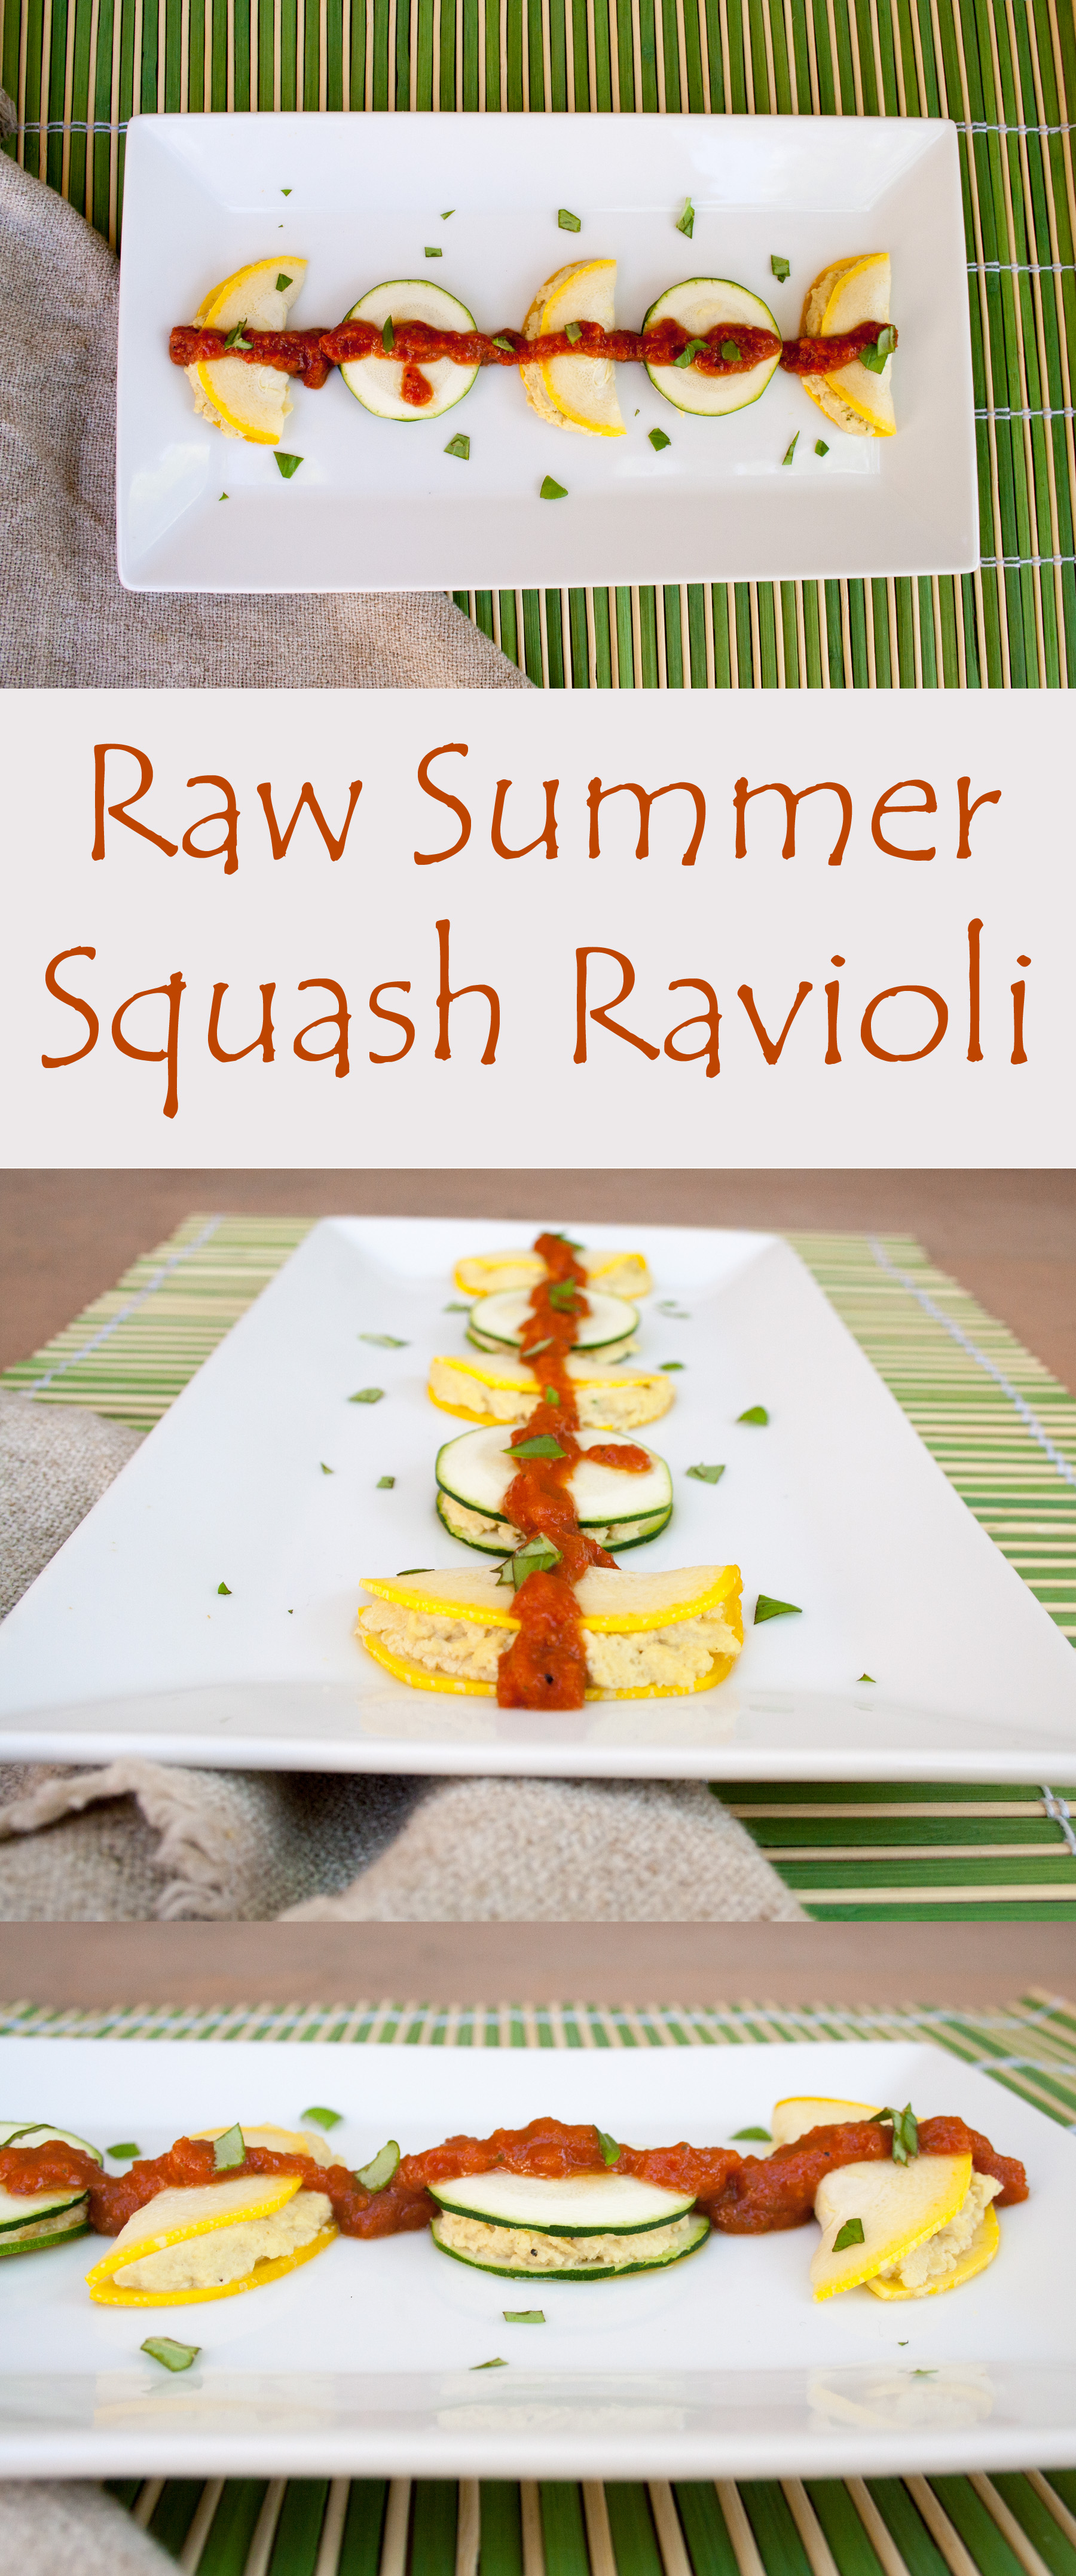 Raw Summer Squash Ravioli collage photo with text.